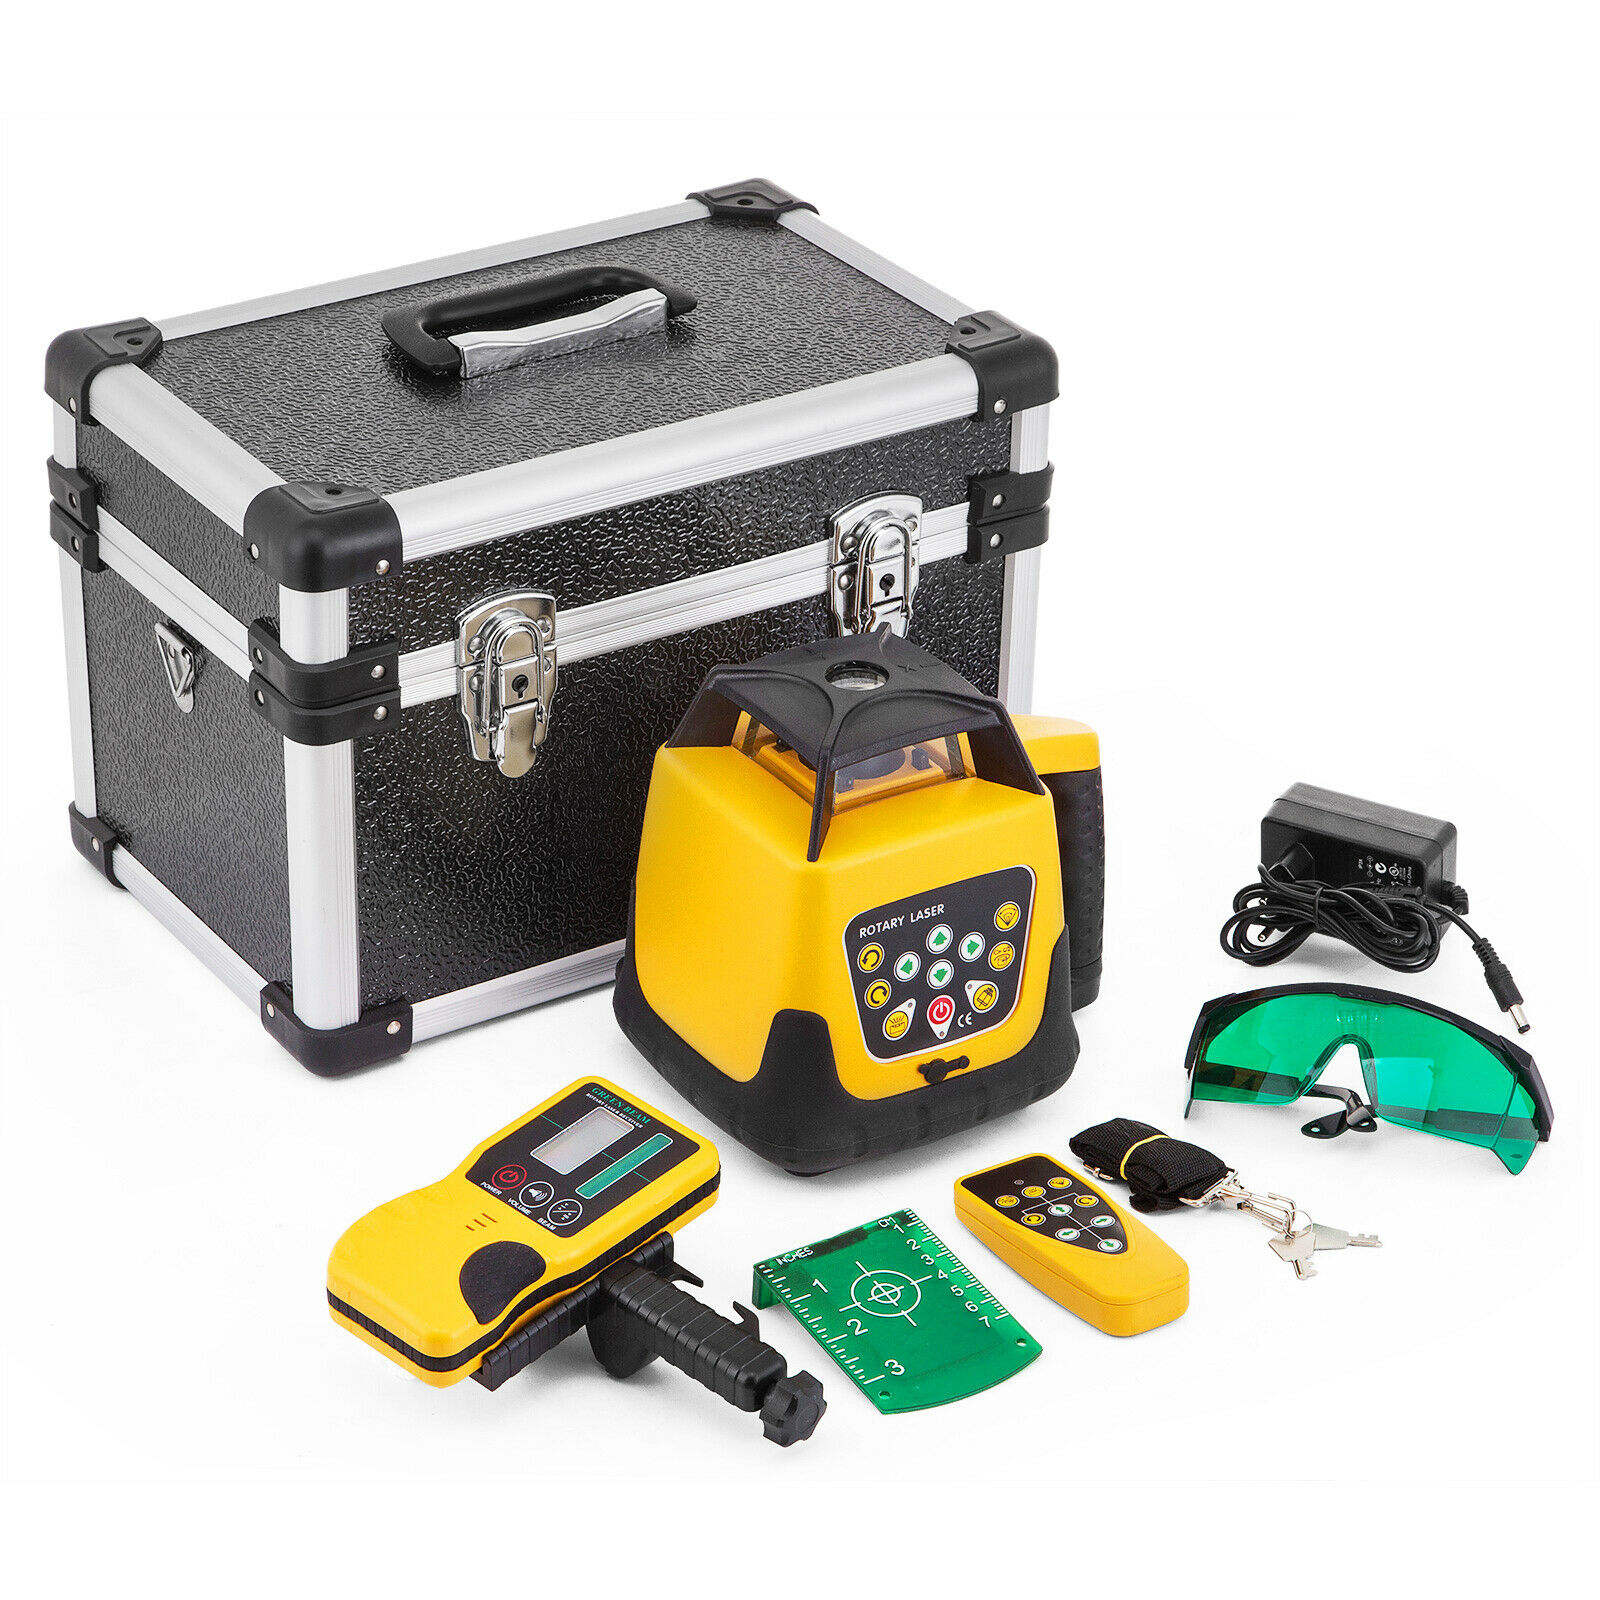 Green Laser 500m Line Self Leveling 360 Rotary Laser Level Construction Automatic Rotating Laser Scales Yellow Color